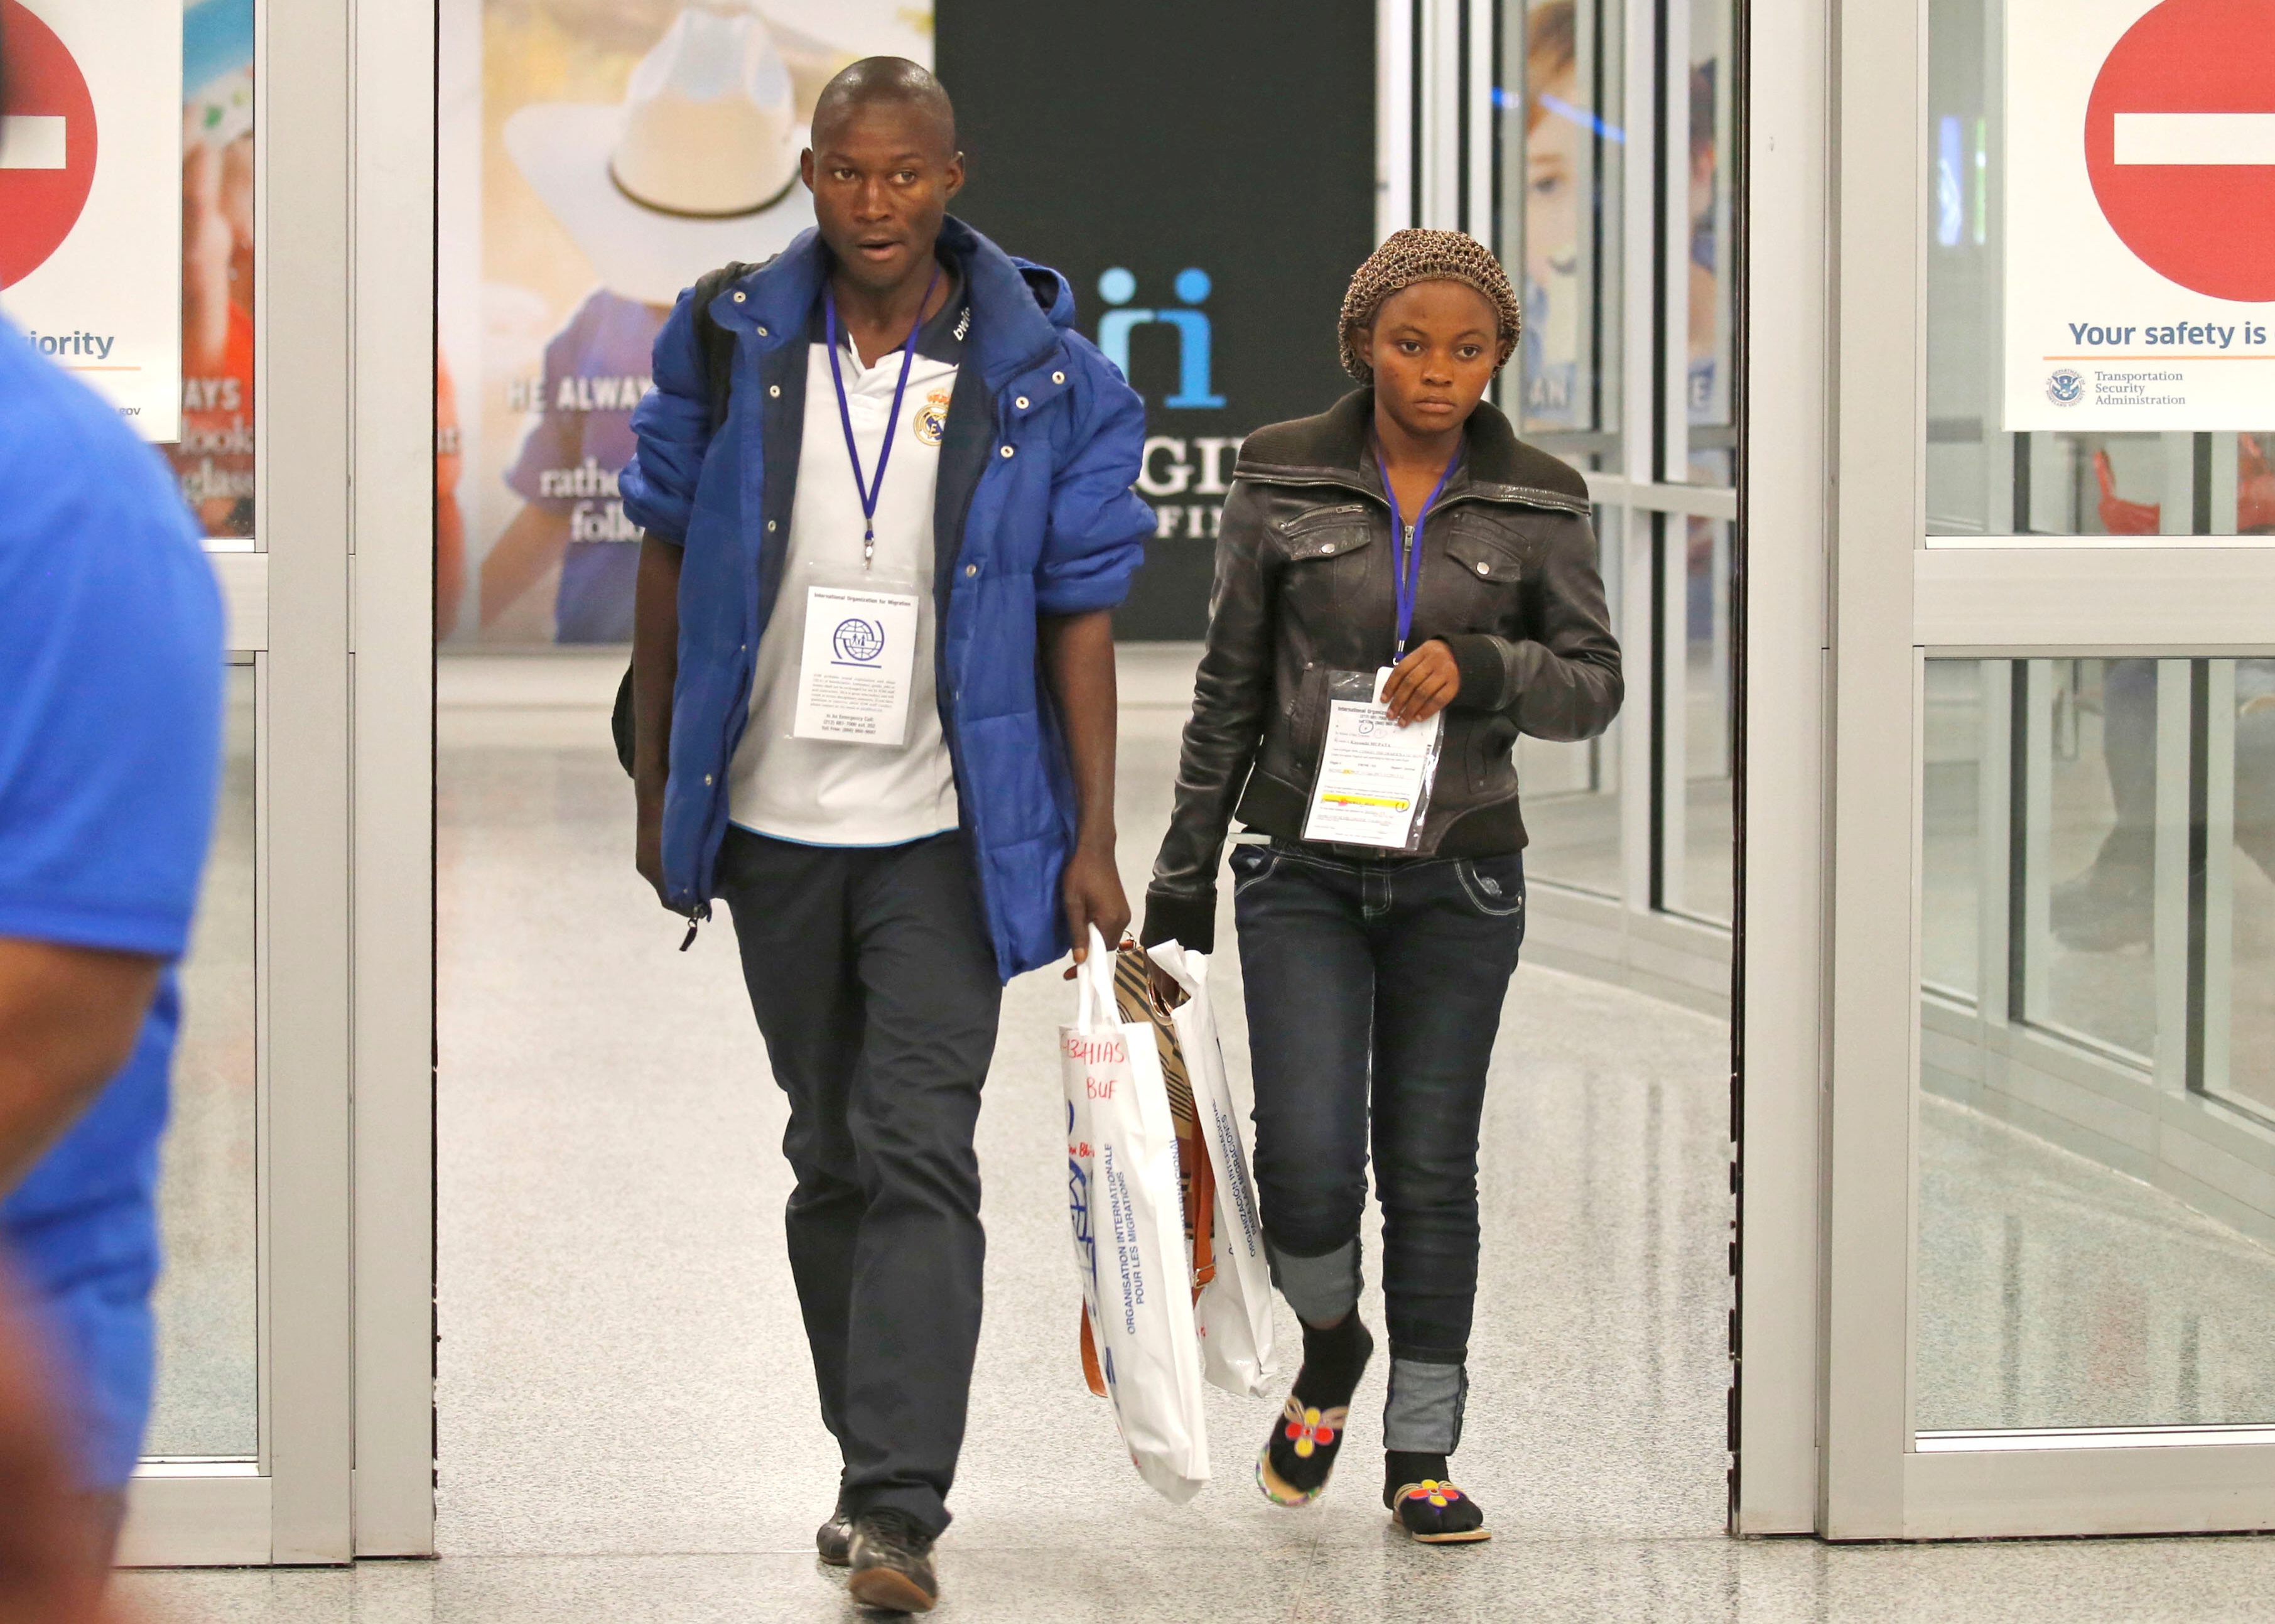 Kayambi and Kalombe Mutata are among the 872 new refugees being allowed into the U.S. through the end of this week under the new immigration order, after which all new refugee admissions will be suspended for 120 days. (Robert Kirkham/Buffalo News)